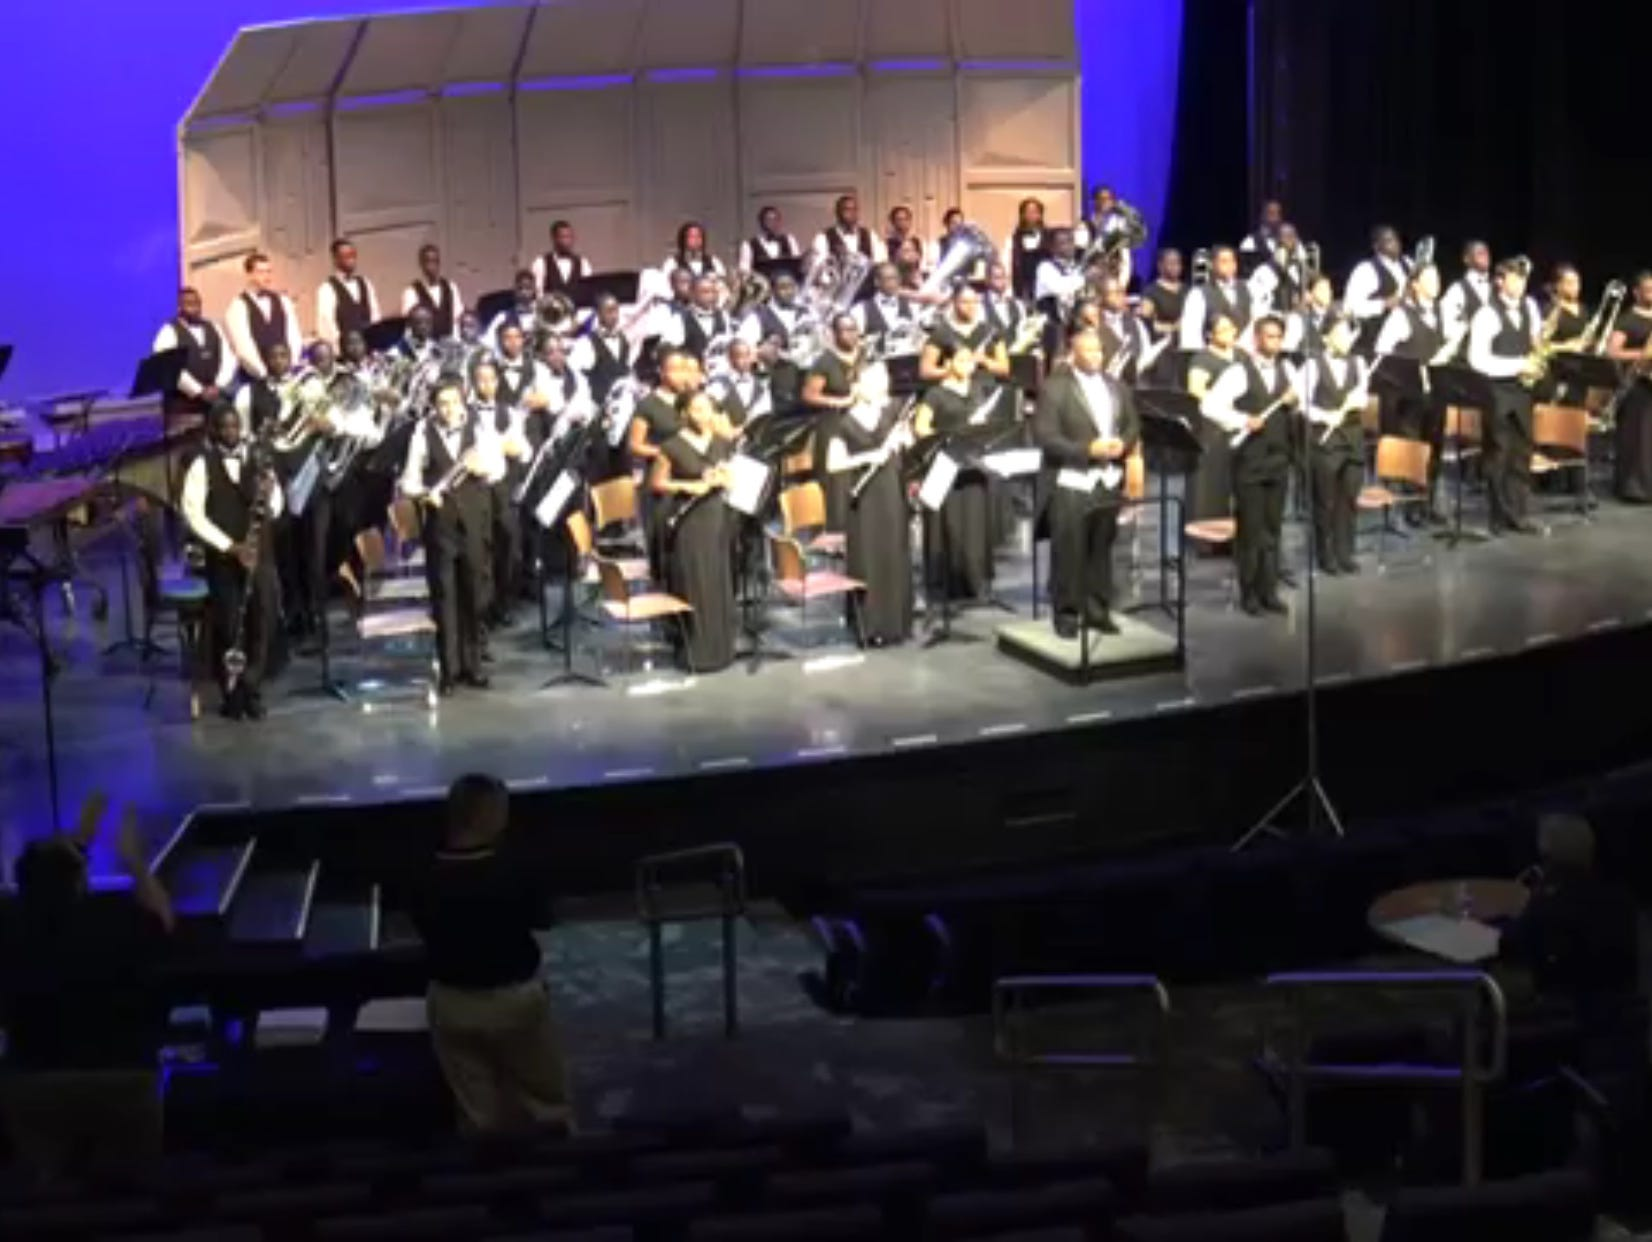 The Southwood Symphonic Winds, conducted by band director Lennard Holden, performs in Atlanta, Georgia.